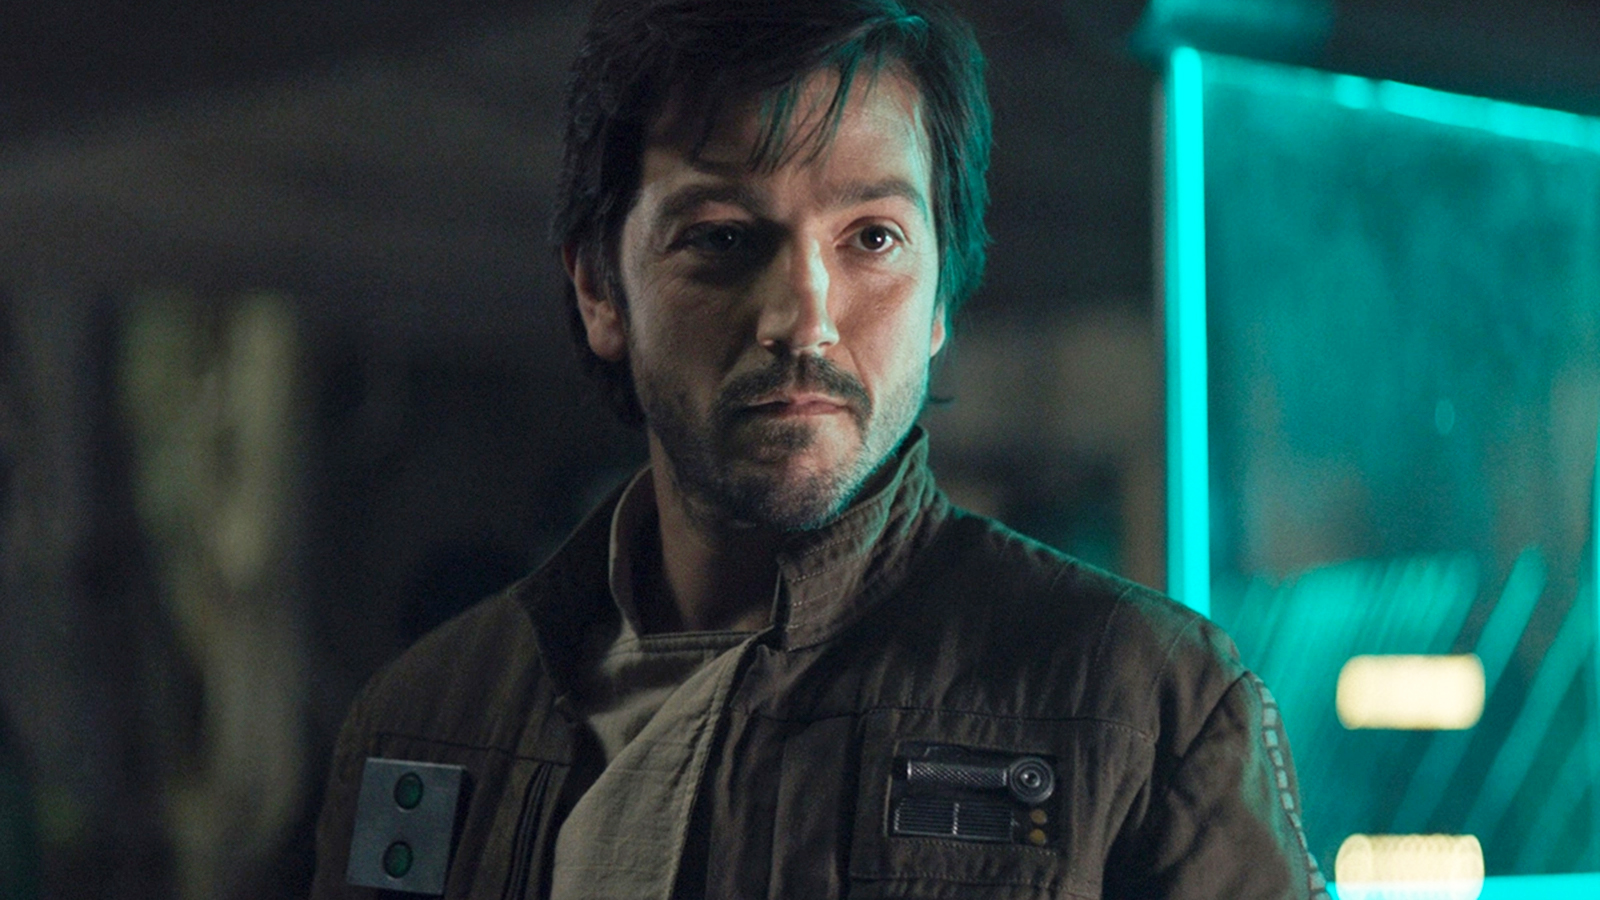 Rogue One Diego Luna as Cassian Andor